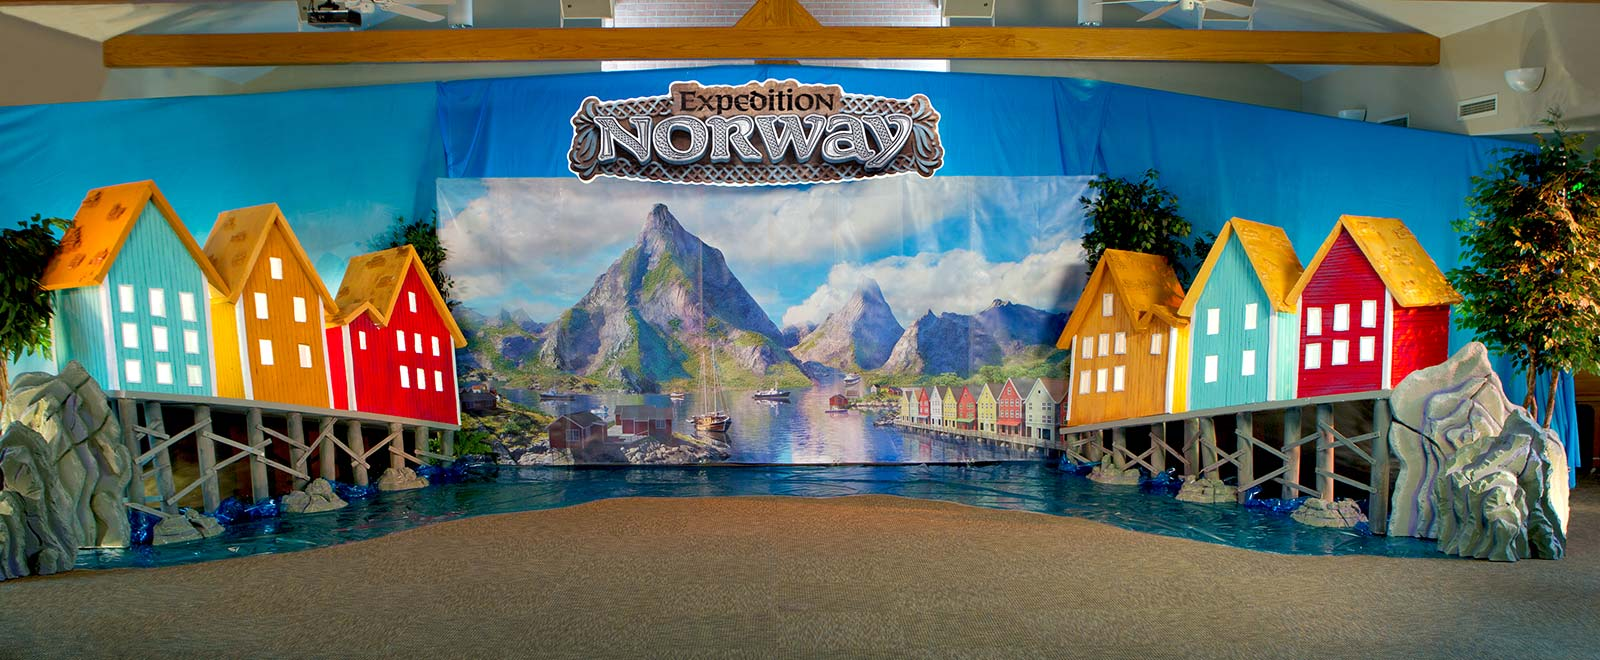 Expedition Norway Cross Culture VBS 2016 Group Vacation